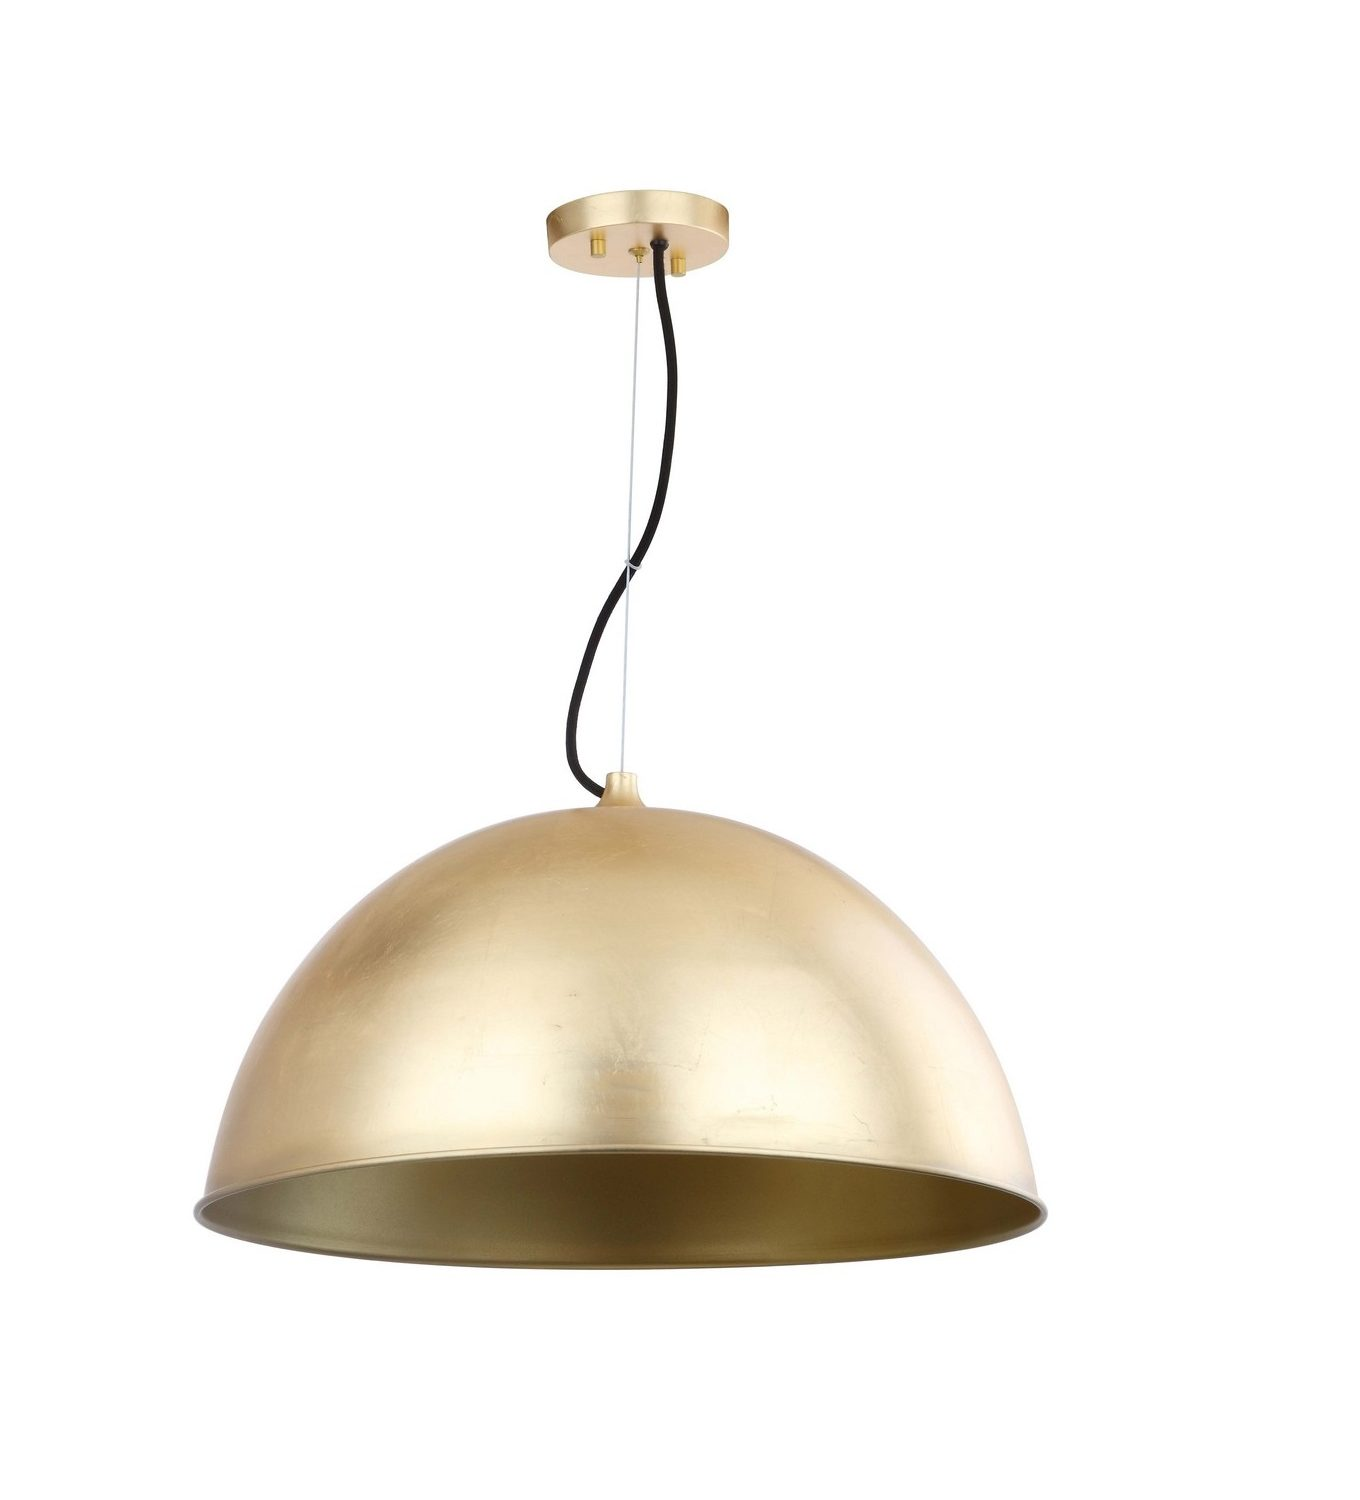 valley finish image wide agb in aged item shown cfm pendant hudson brass magnifying lighting light mini glass columbia inch